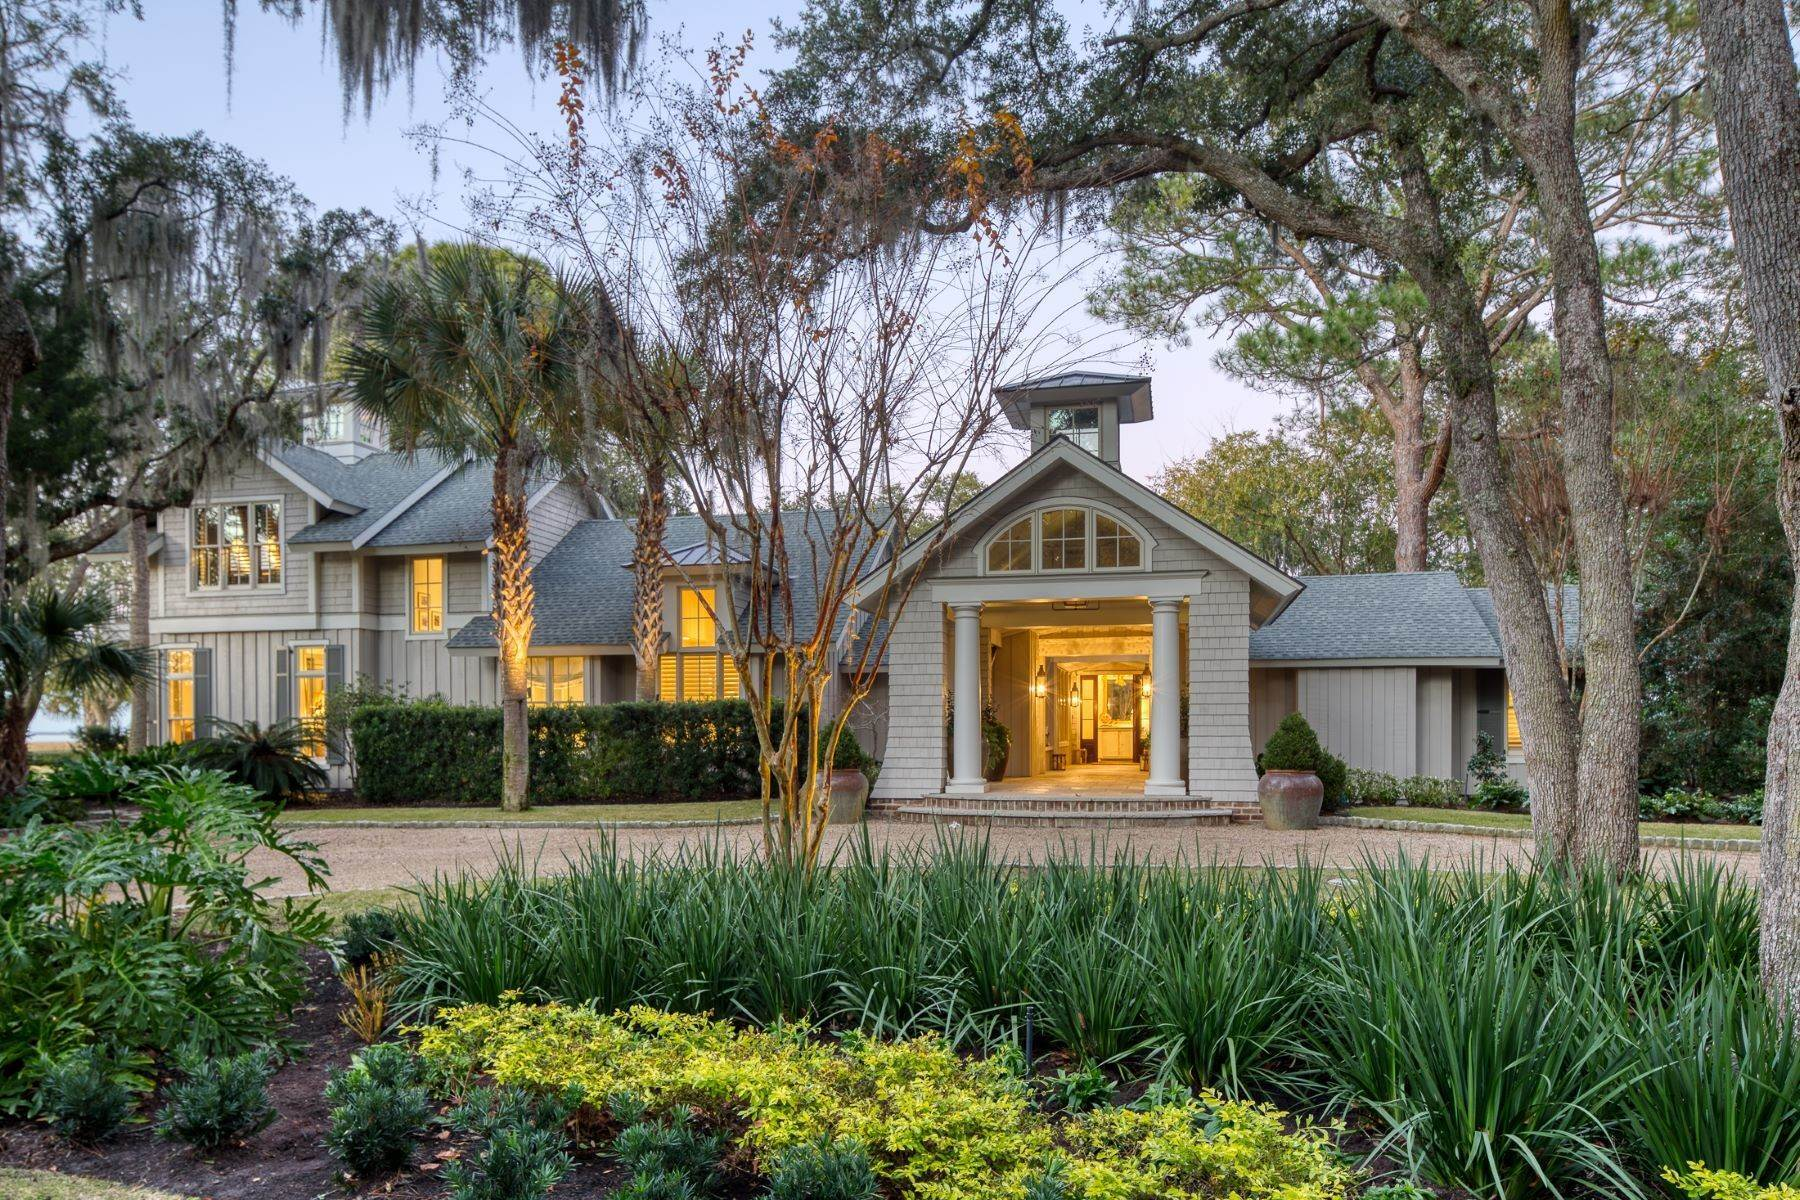 2. Single Family Homes for Sale at Premier Waterfront 71 North Calibogue Cay Hilton Head Island, South Carolina 29928 United States